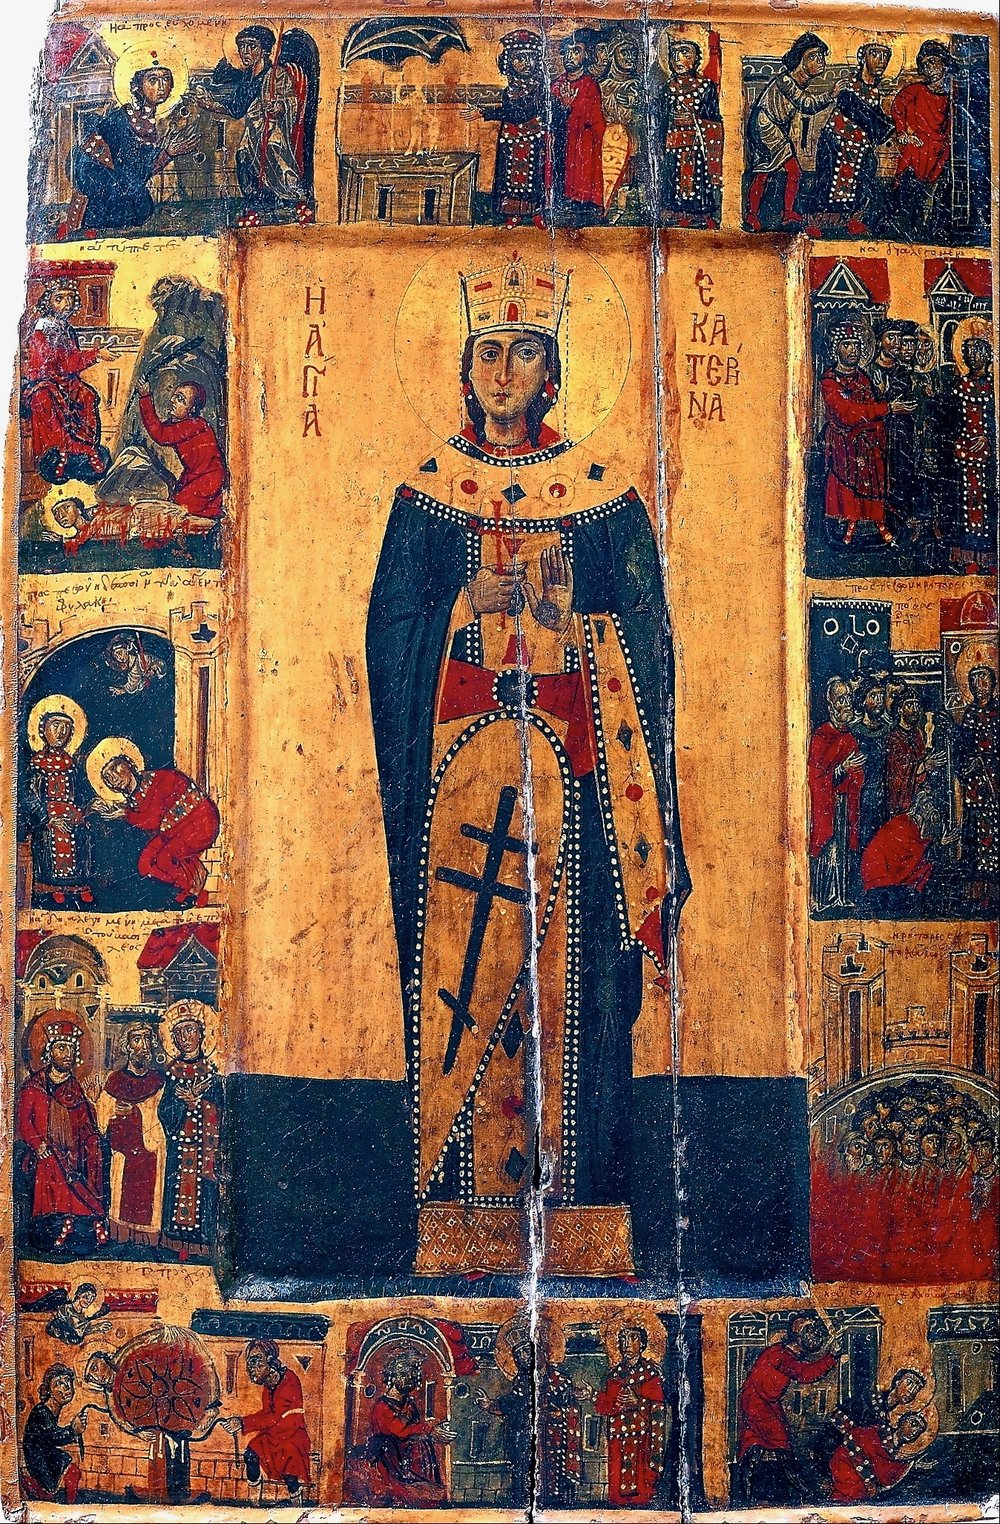 Thirteenth century icon of Saint Catherine with scenes from her life and martyrdom.